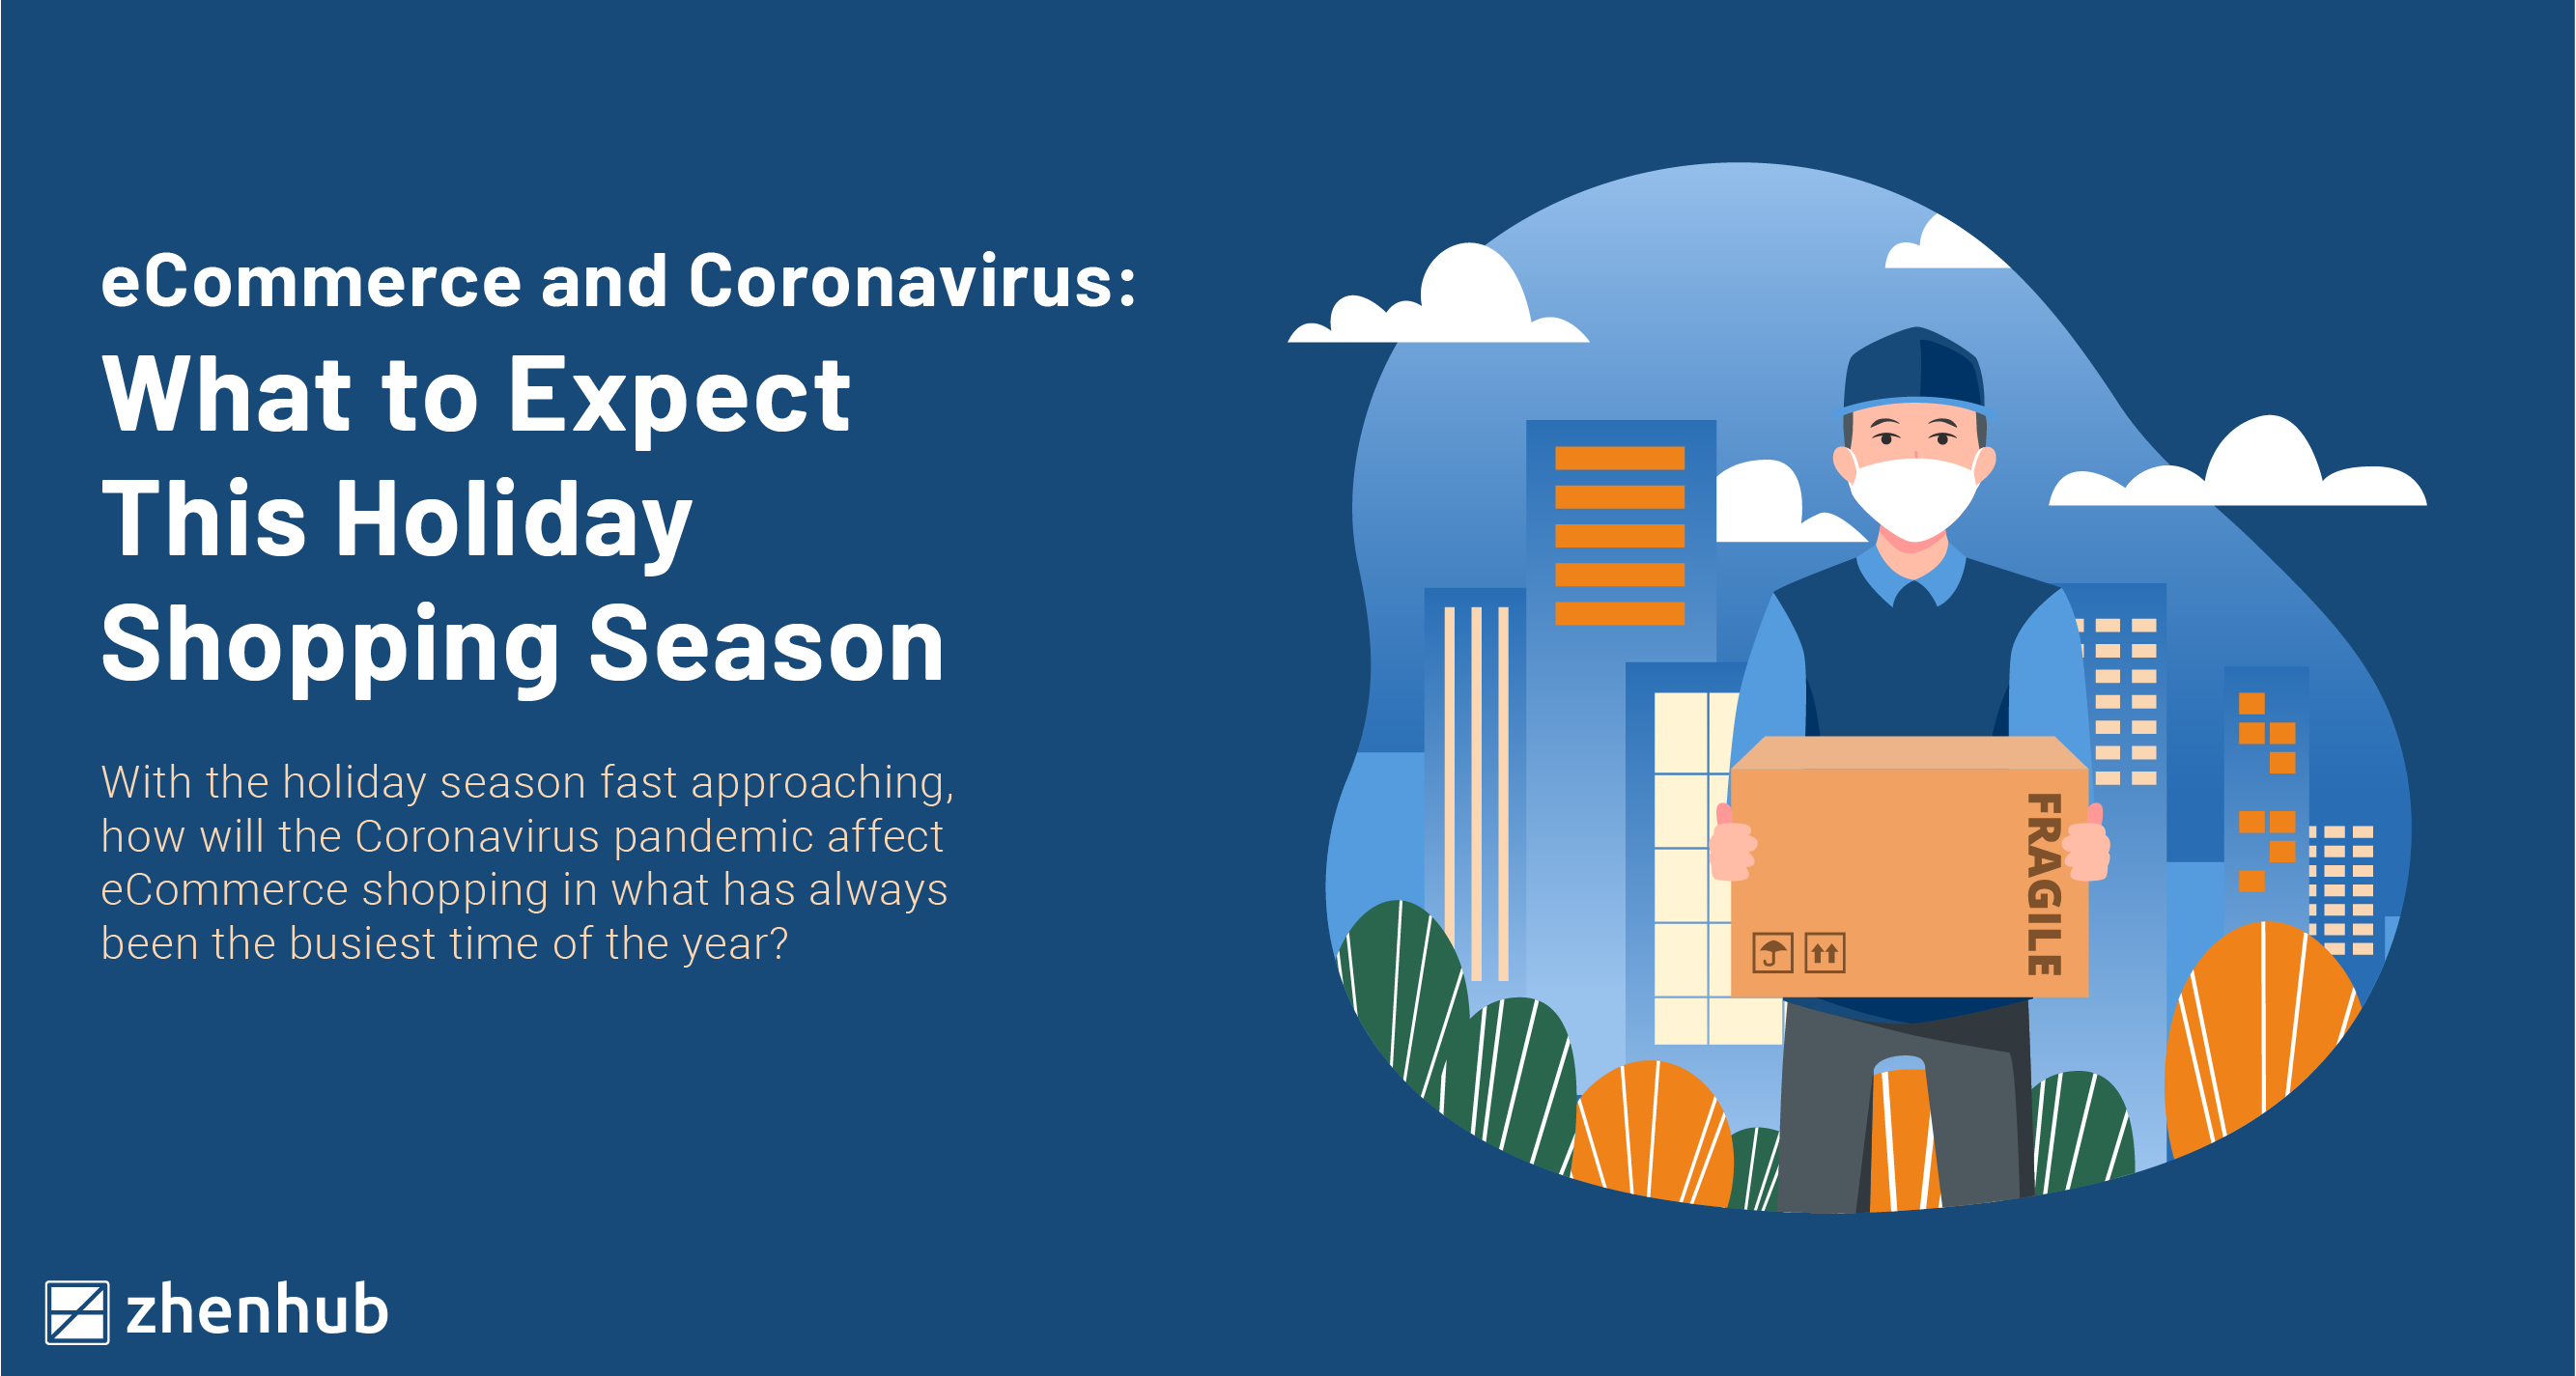 ecommerce-coronavirus-impact-holiday-shopping